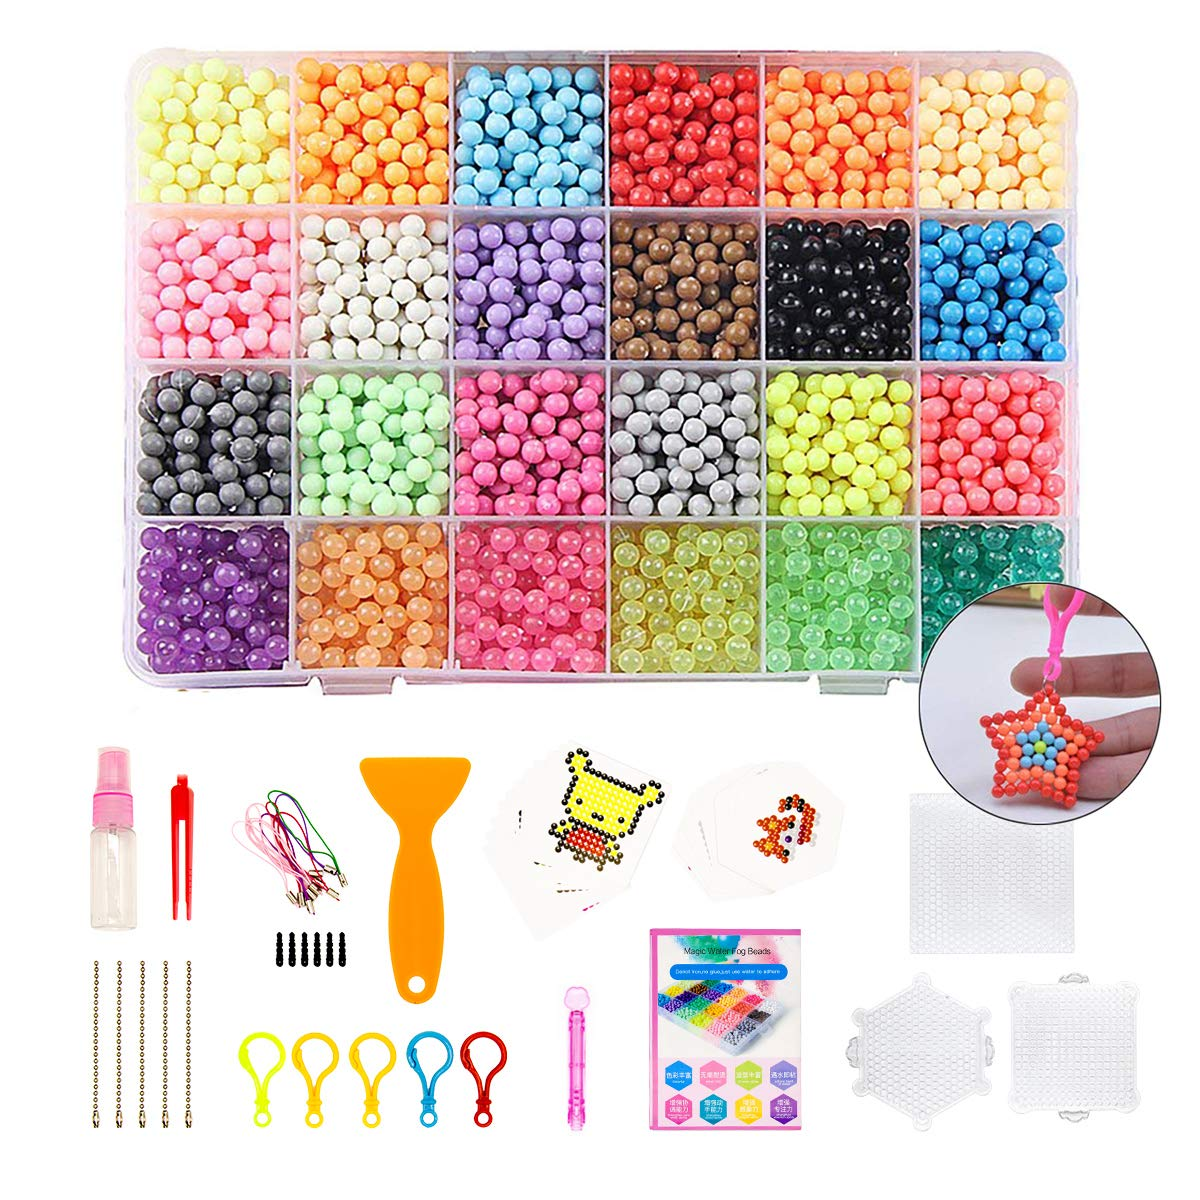 Water Beads for Kids NonToxic, 24 Colors 4000 Pcs Magic Water Fuse Sticky Beads Art Crafts Toys with 48 Patterns Pegboards & Accessories for Kids Beginners